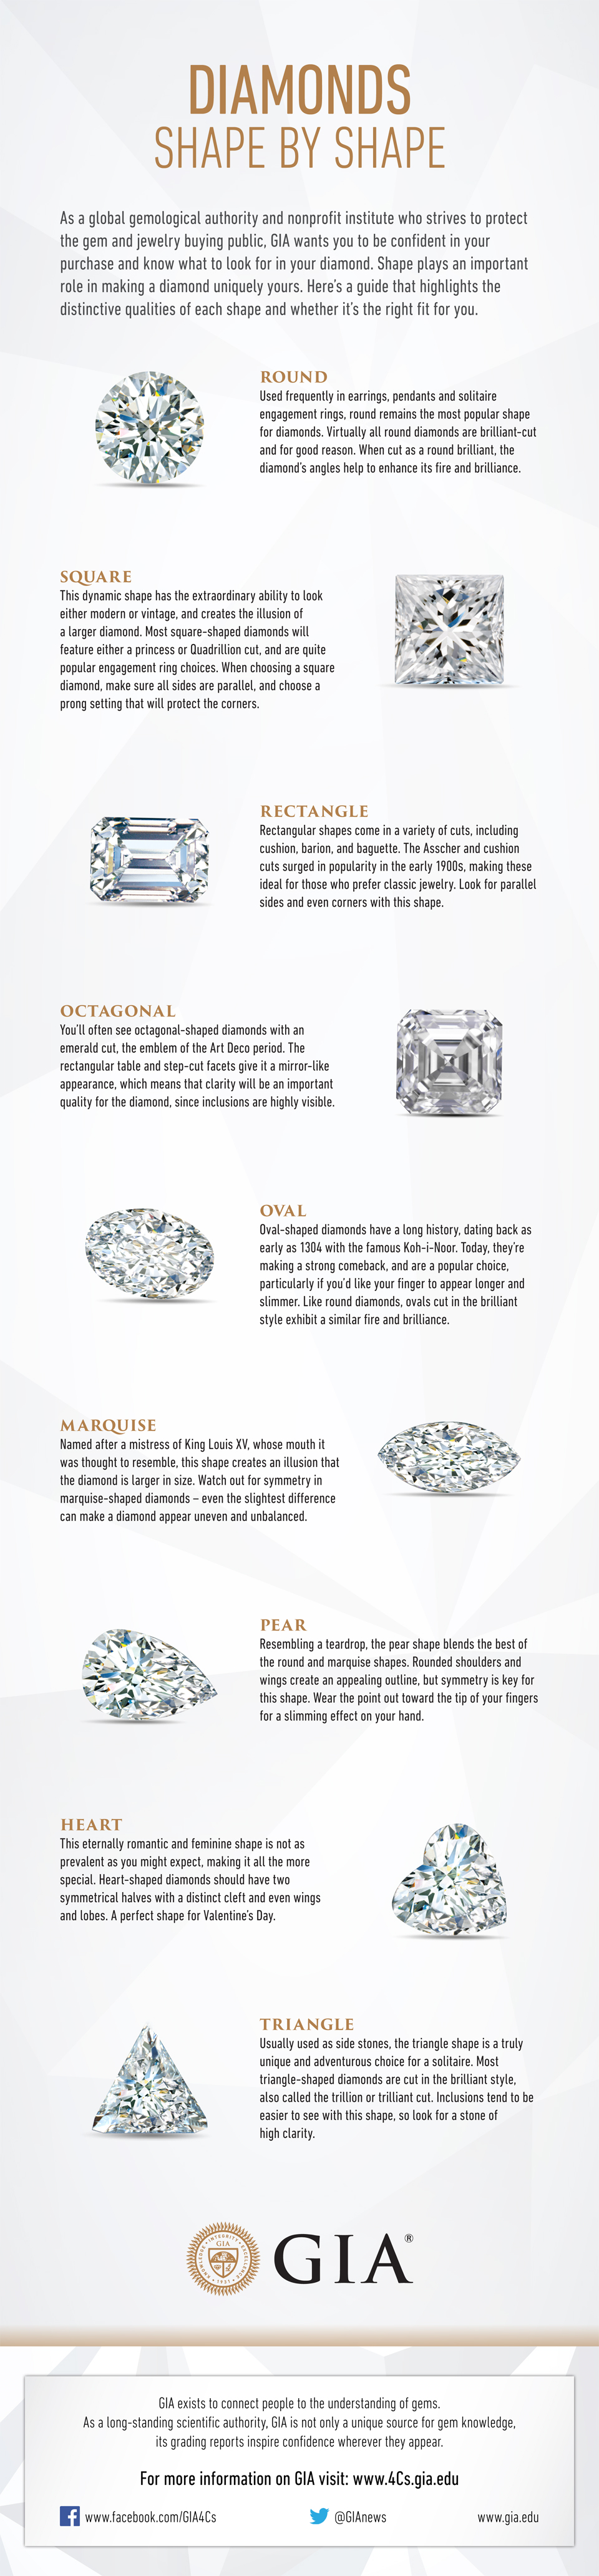 have blog c color more s popularly of grade is common a whiter to that clear the diamonds known clarity or white notion valuable diamond cs grading are clearer it